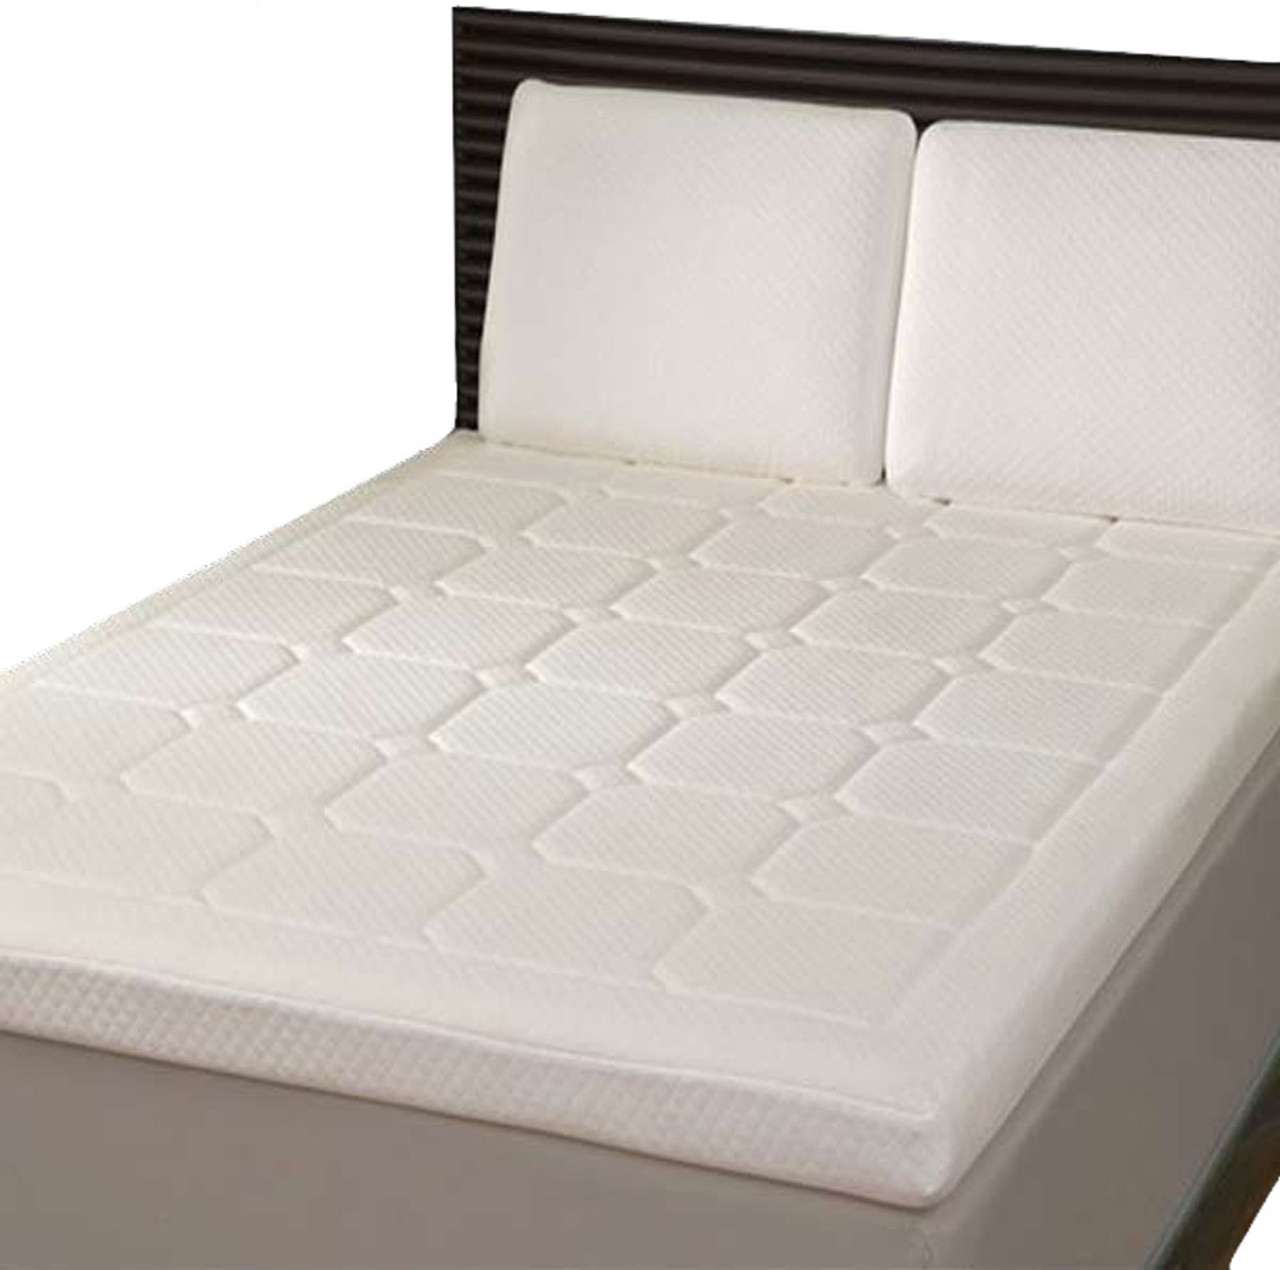 King Size Mattress Australia King Grand Luxury Quilted Memory Foam Mattress Topper Mtq 5